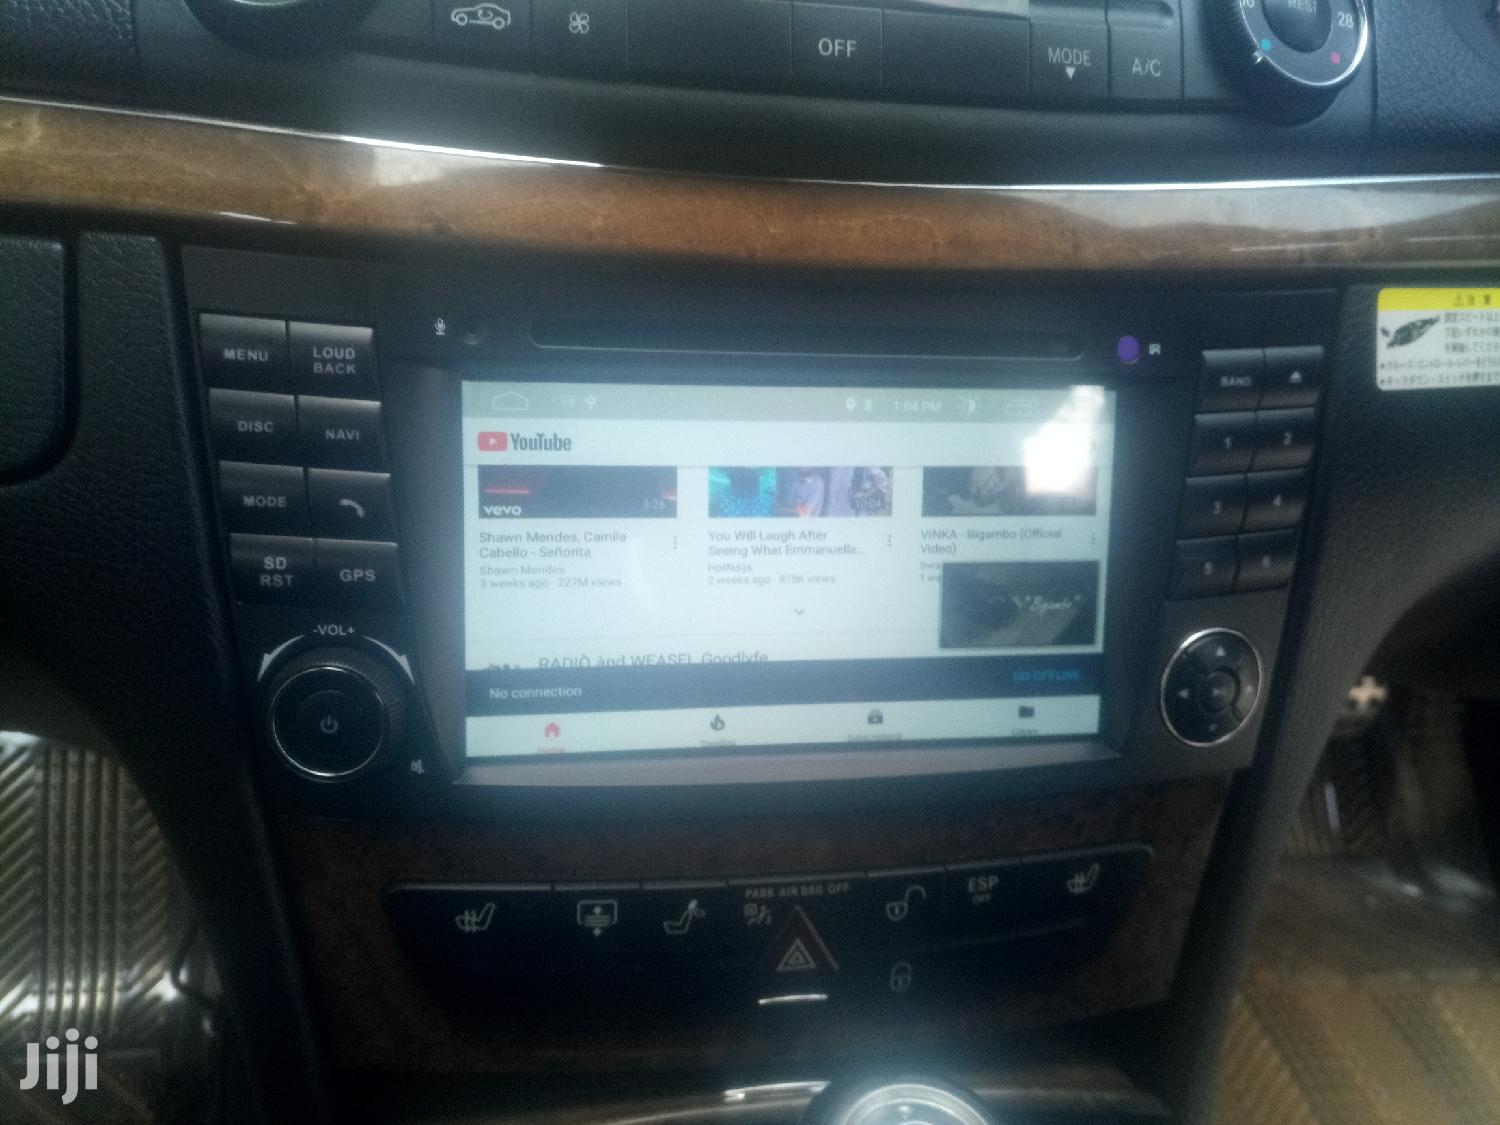 Mercedes Benz W211 E-class Android Radio | Vehicle Parts & Accessories for sale in Kampala, Central Region, Uganda